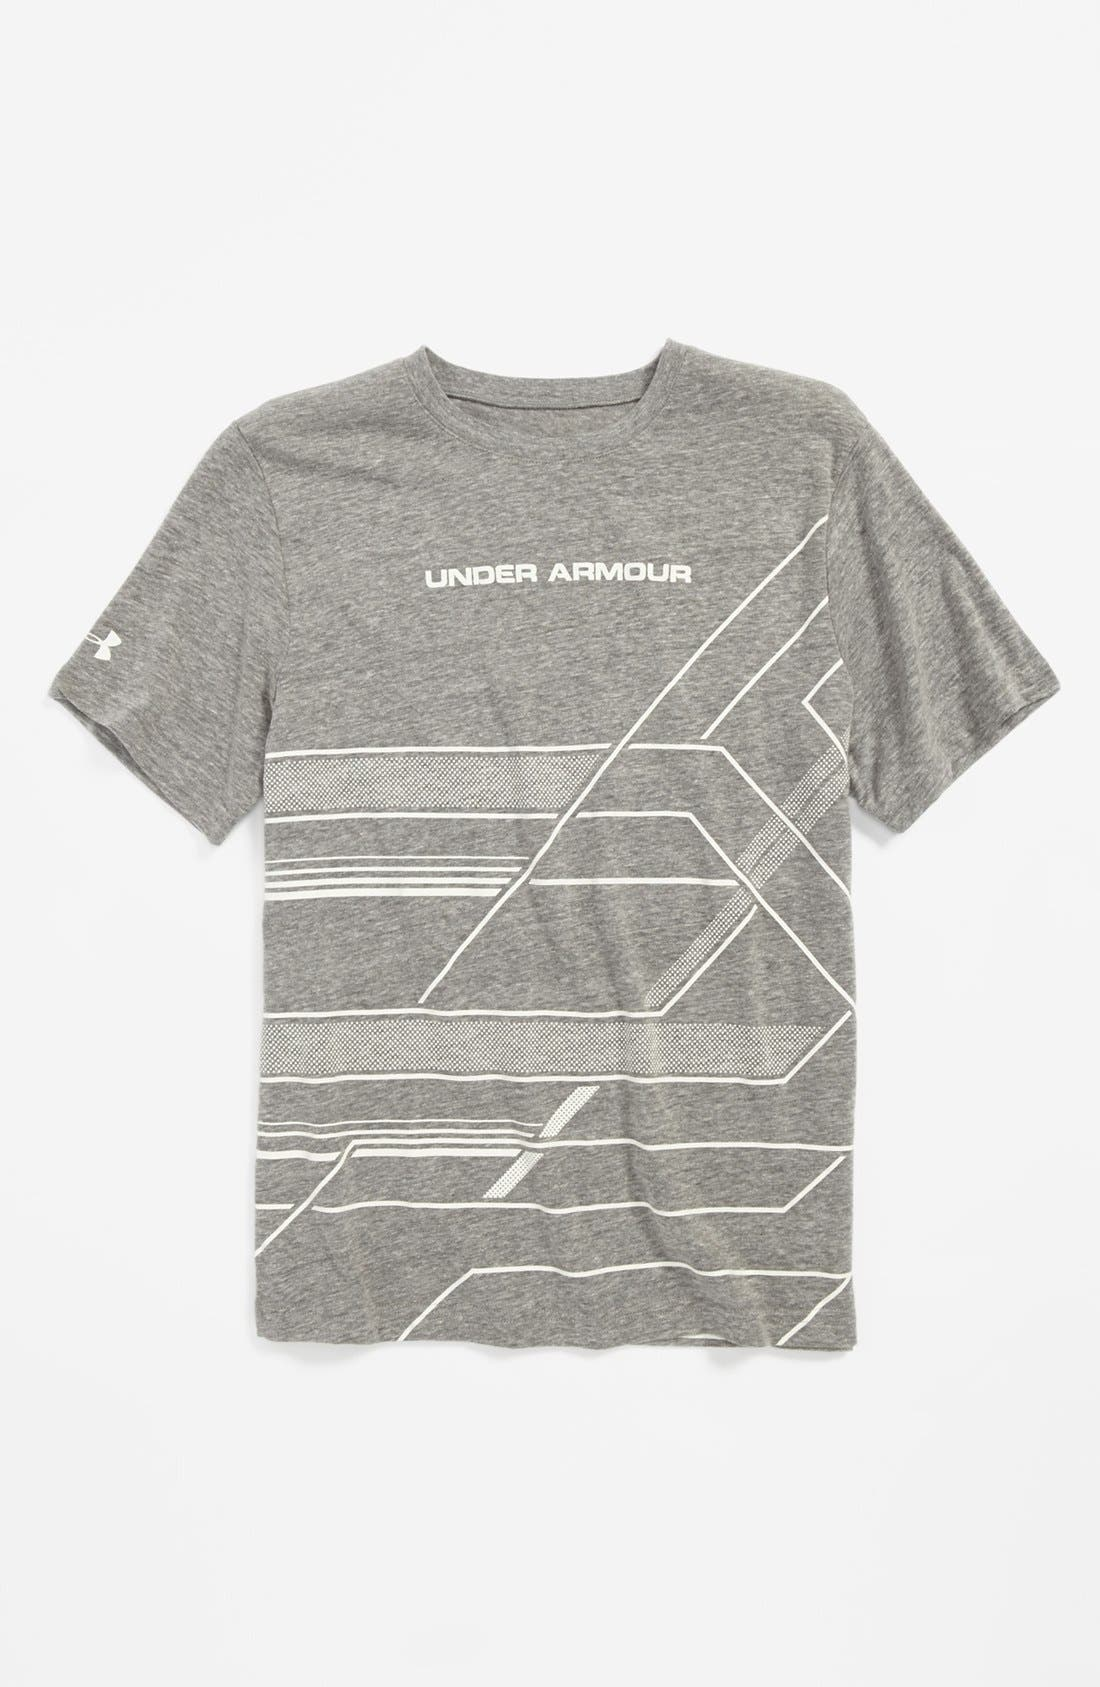 Alternate Image 1 Selected - Under Armour 'Domineer' T-Shirt (Big Boys)